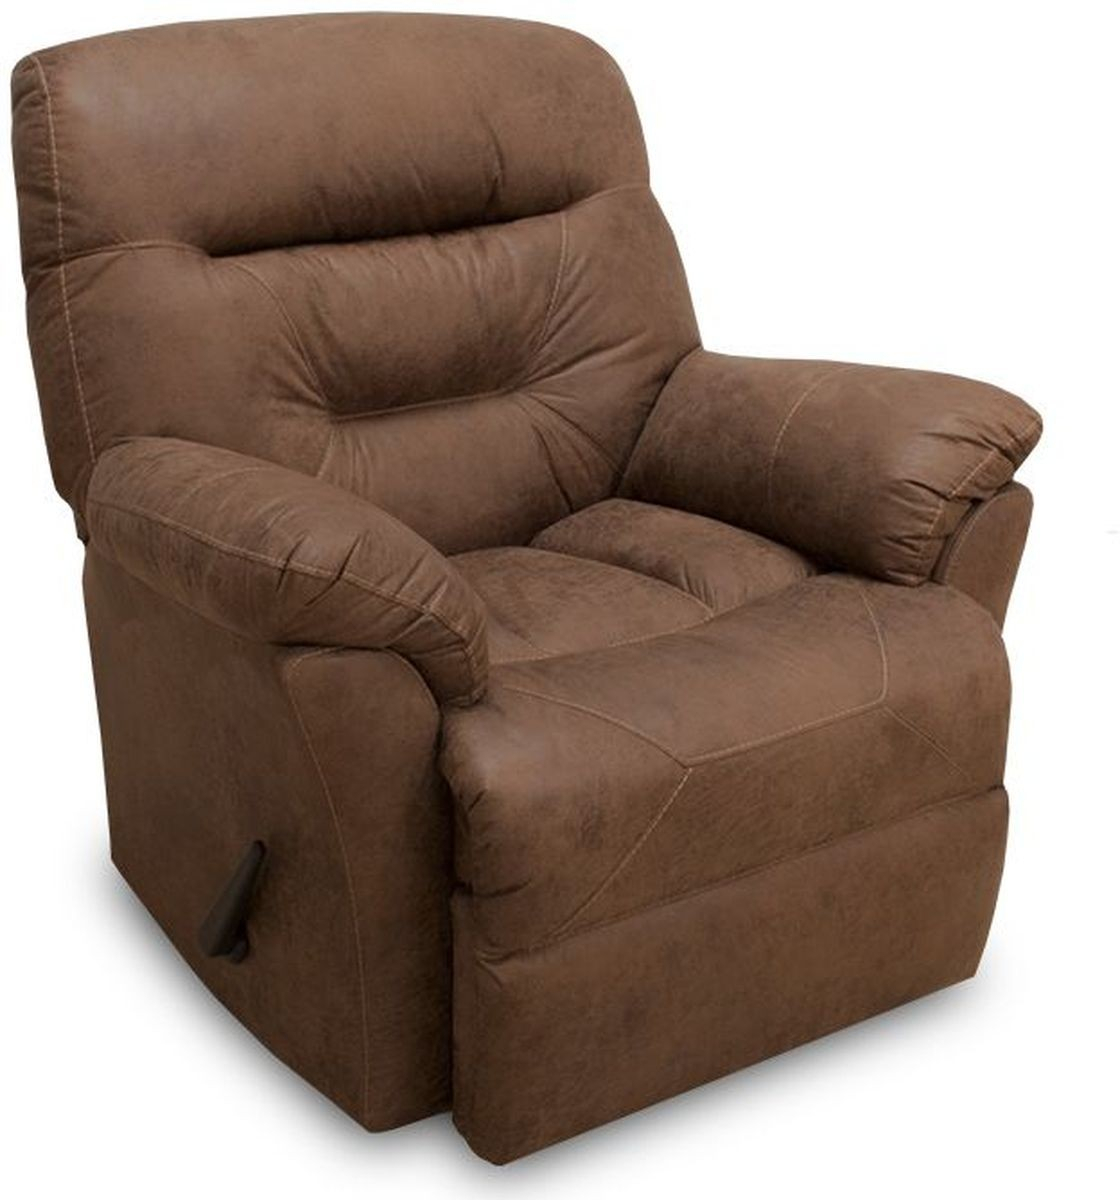 Franklin Prodigy Swivel Rocker Recliner In Bandero Tobacco | Local Intended For Swivel Tobacco Leather Chairs (View 16 of 25)